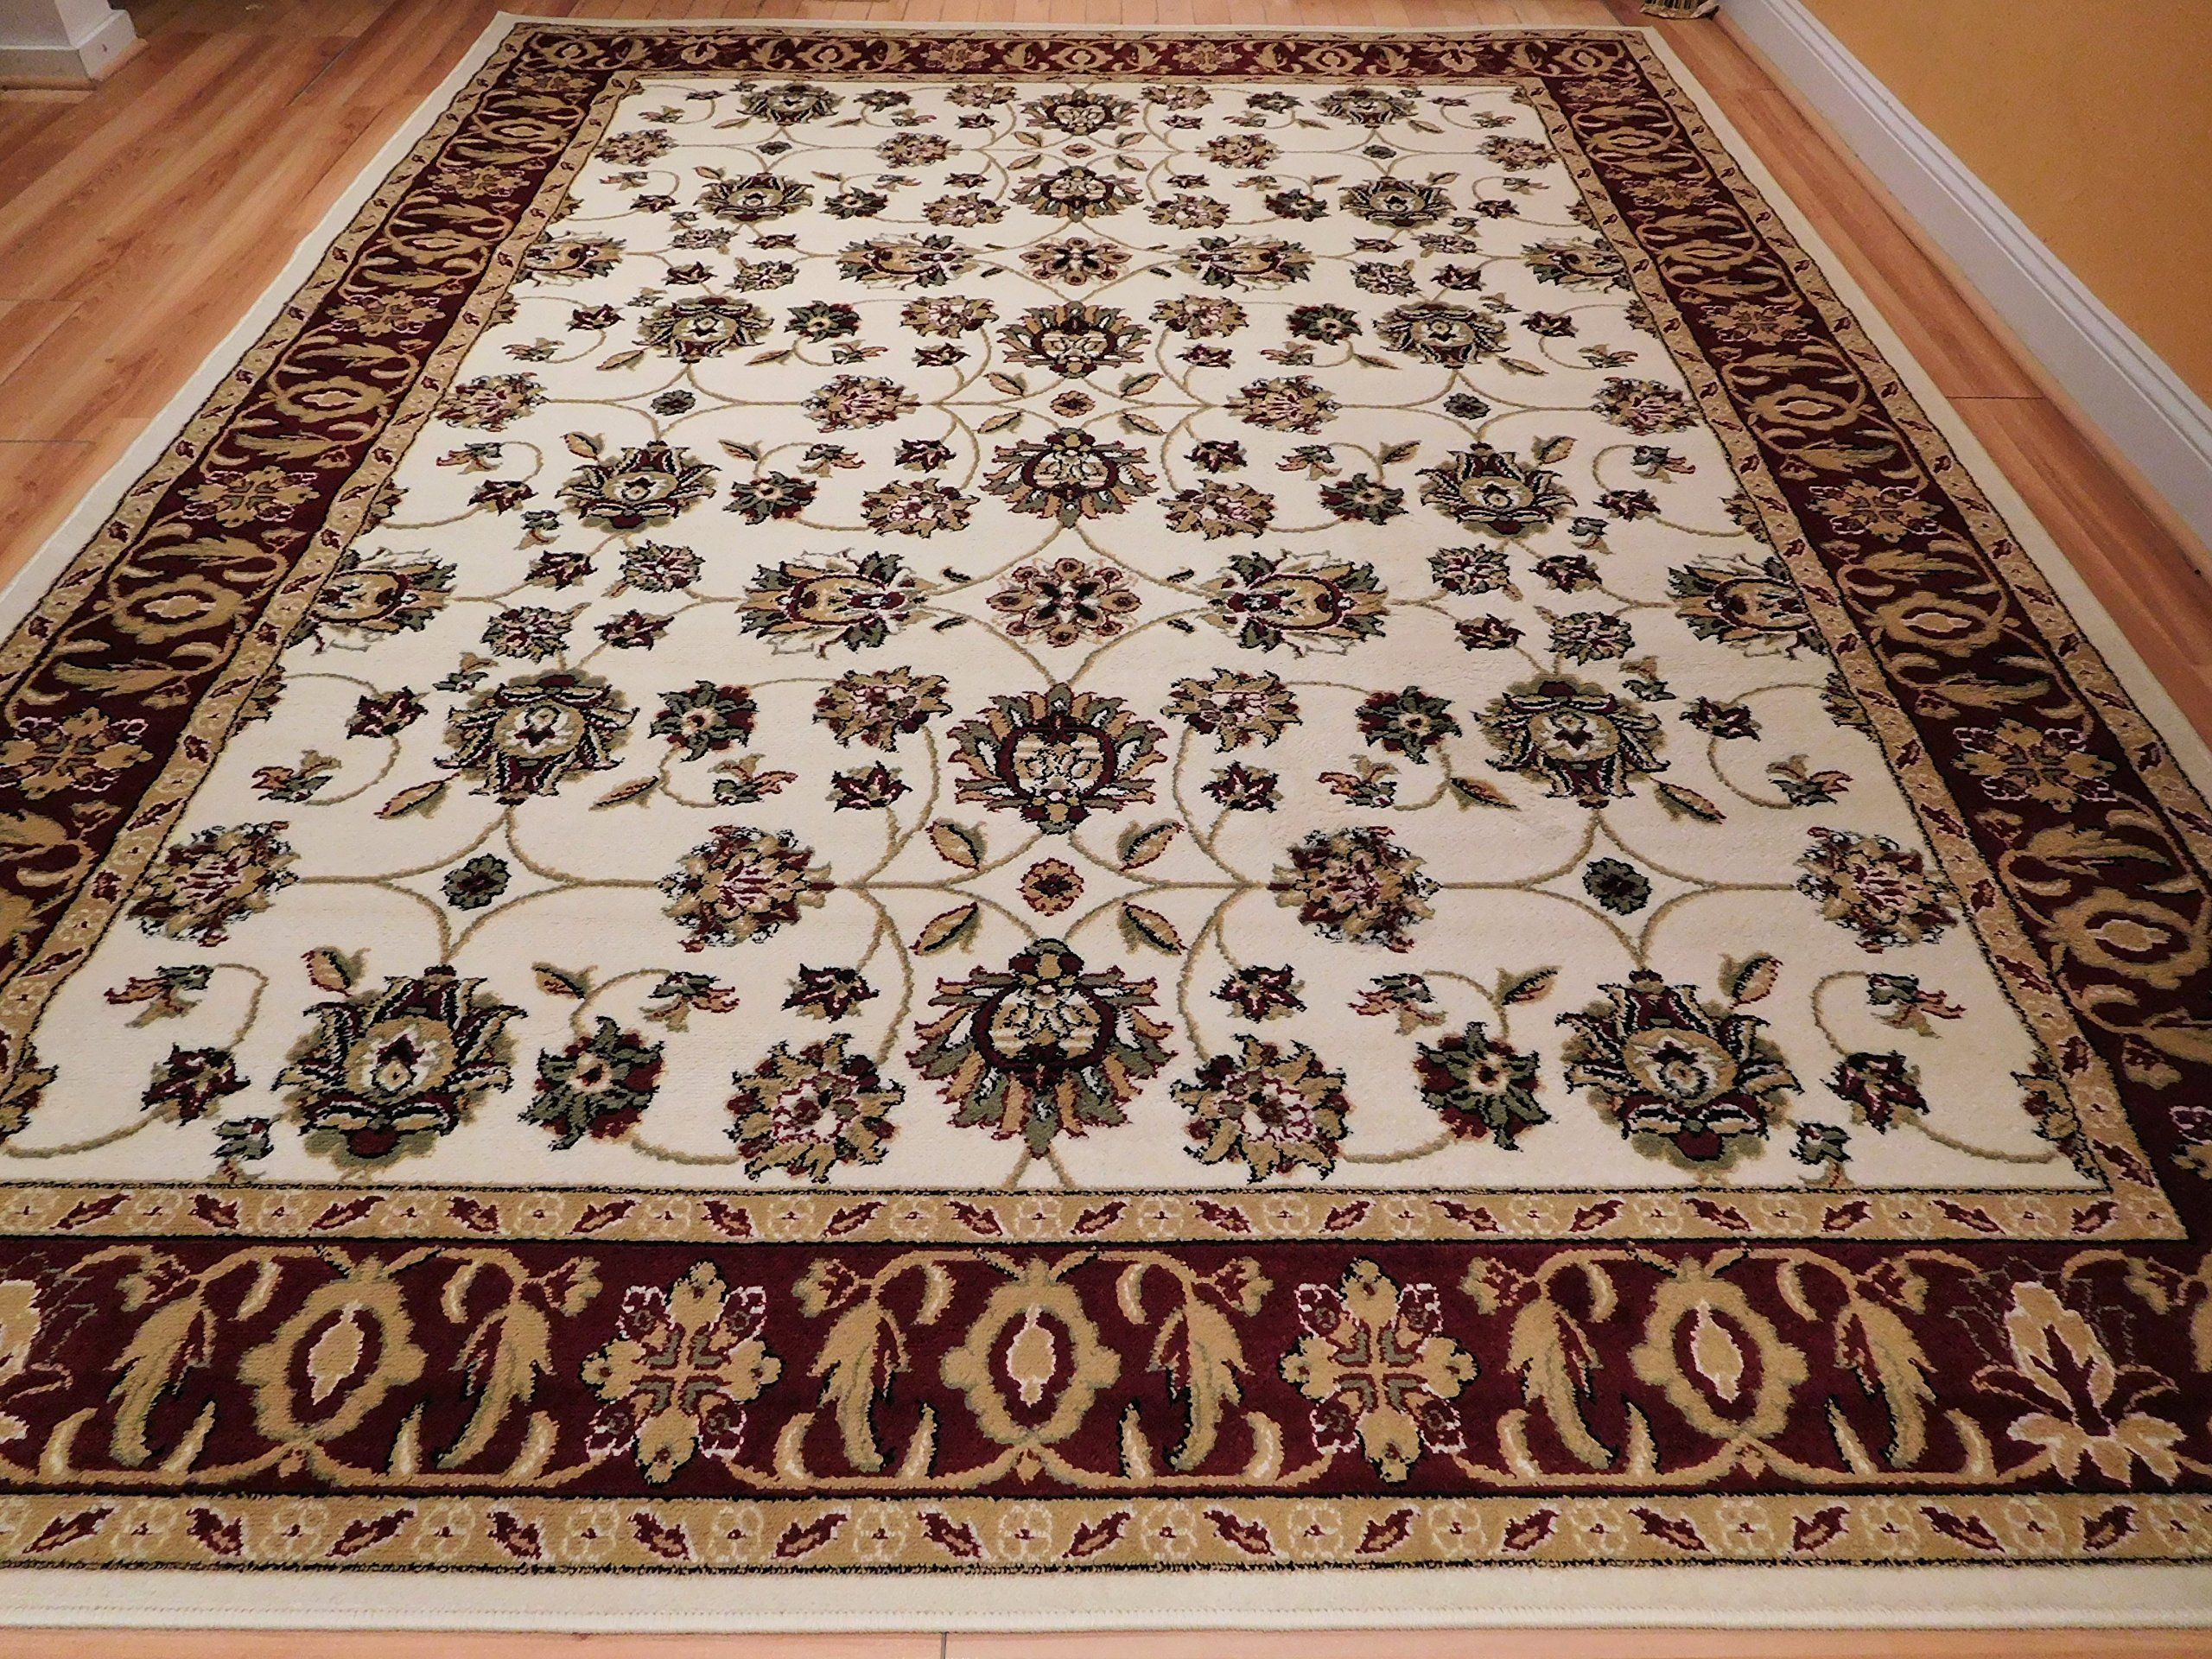 New Large Rugs Cream Area Rug Living Room 8x10 Clearance Under 100